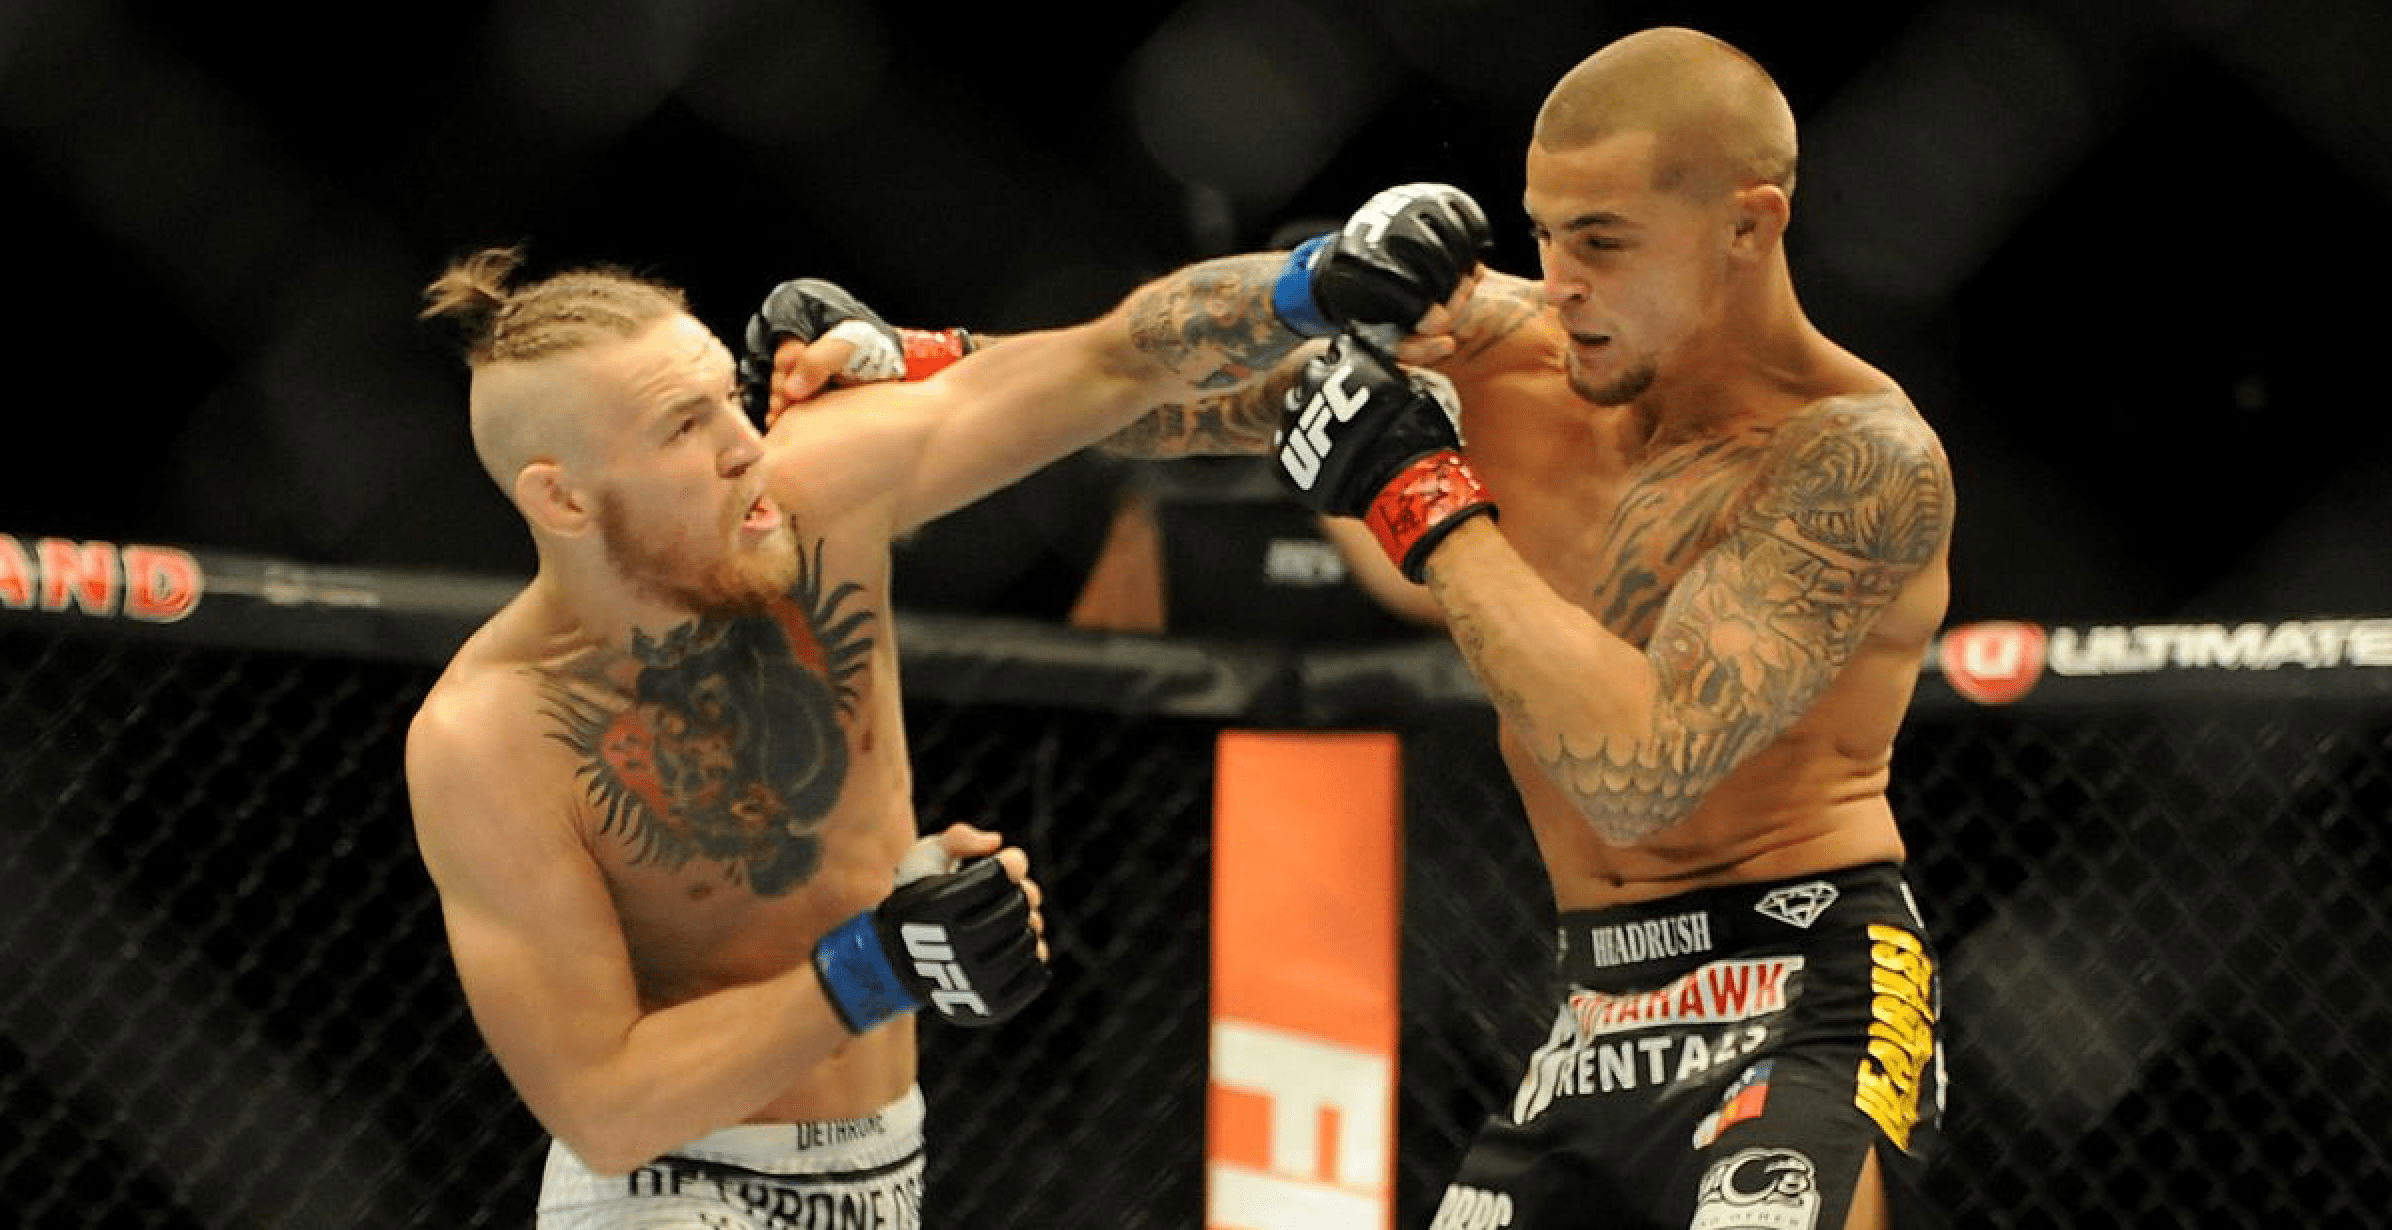 UFC: Dustin Poirier Talks Potential Rematch With Conor McGregor